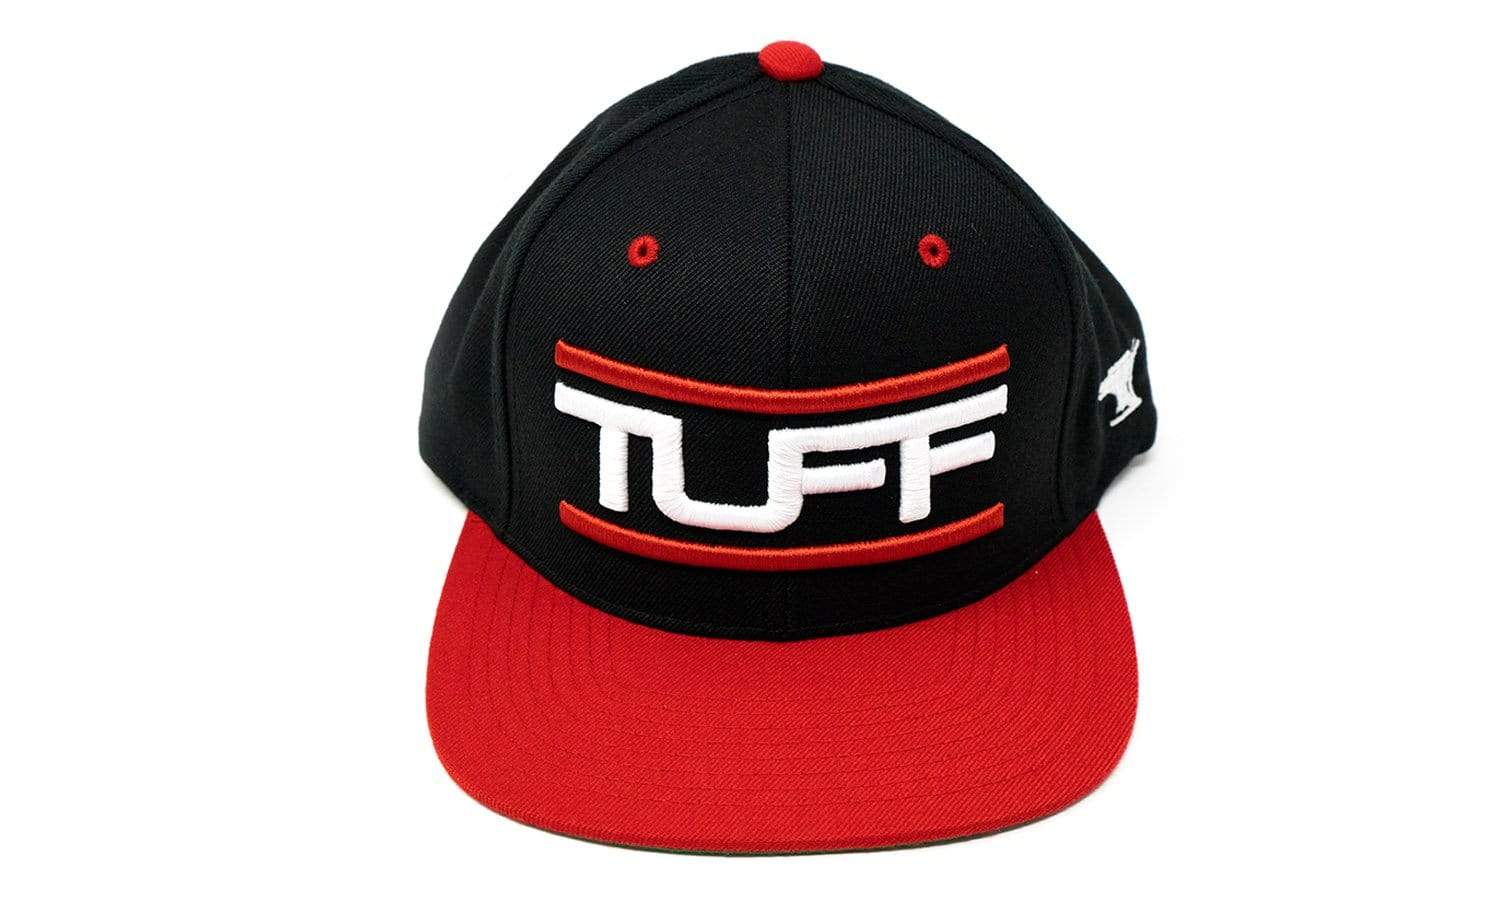 TUFF Bar'd Black/Red Snapback Hat TuffWraps.com